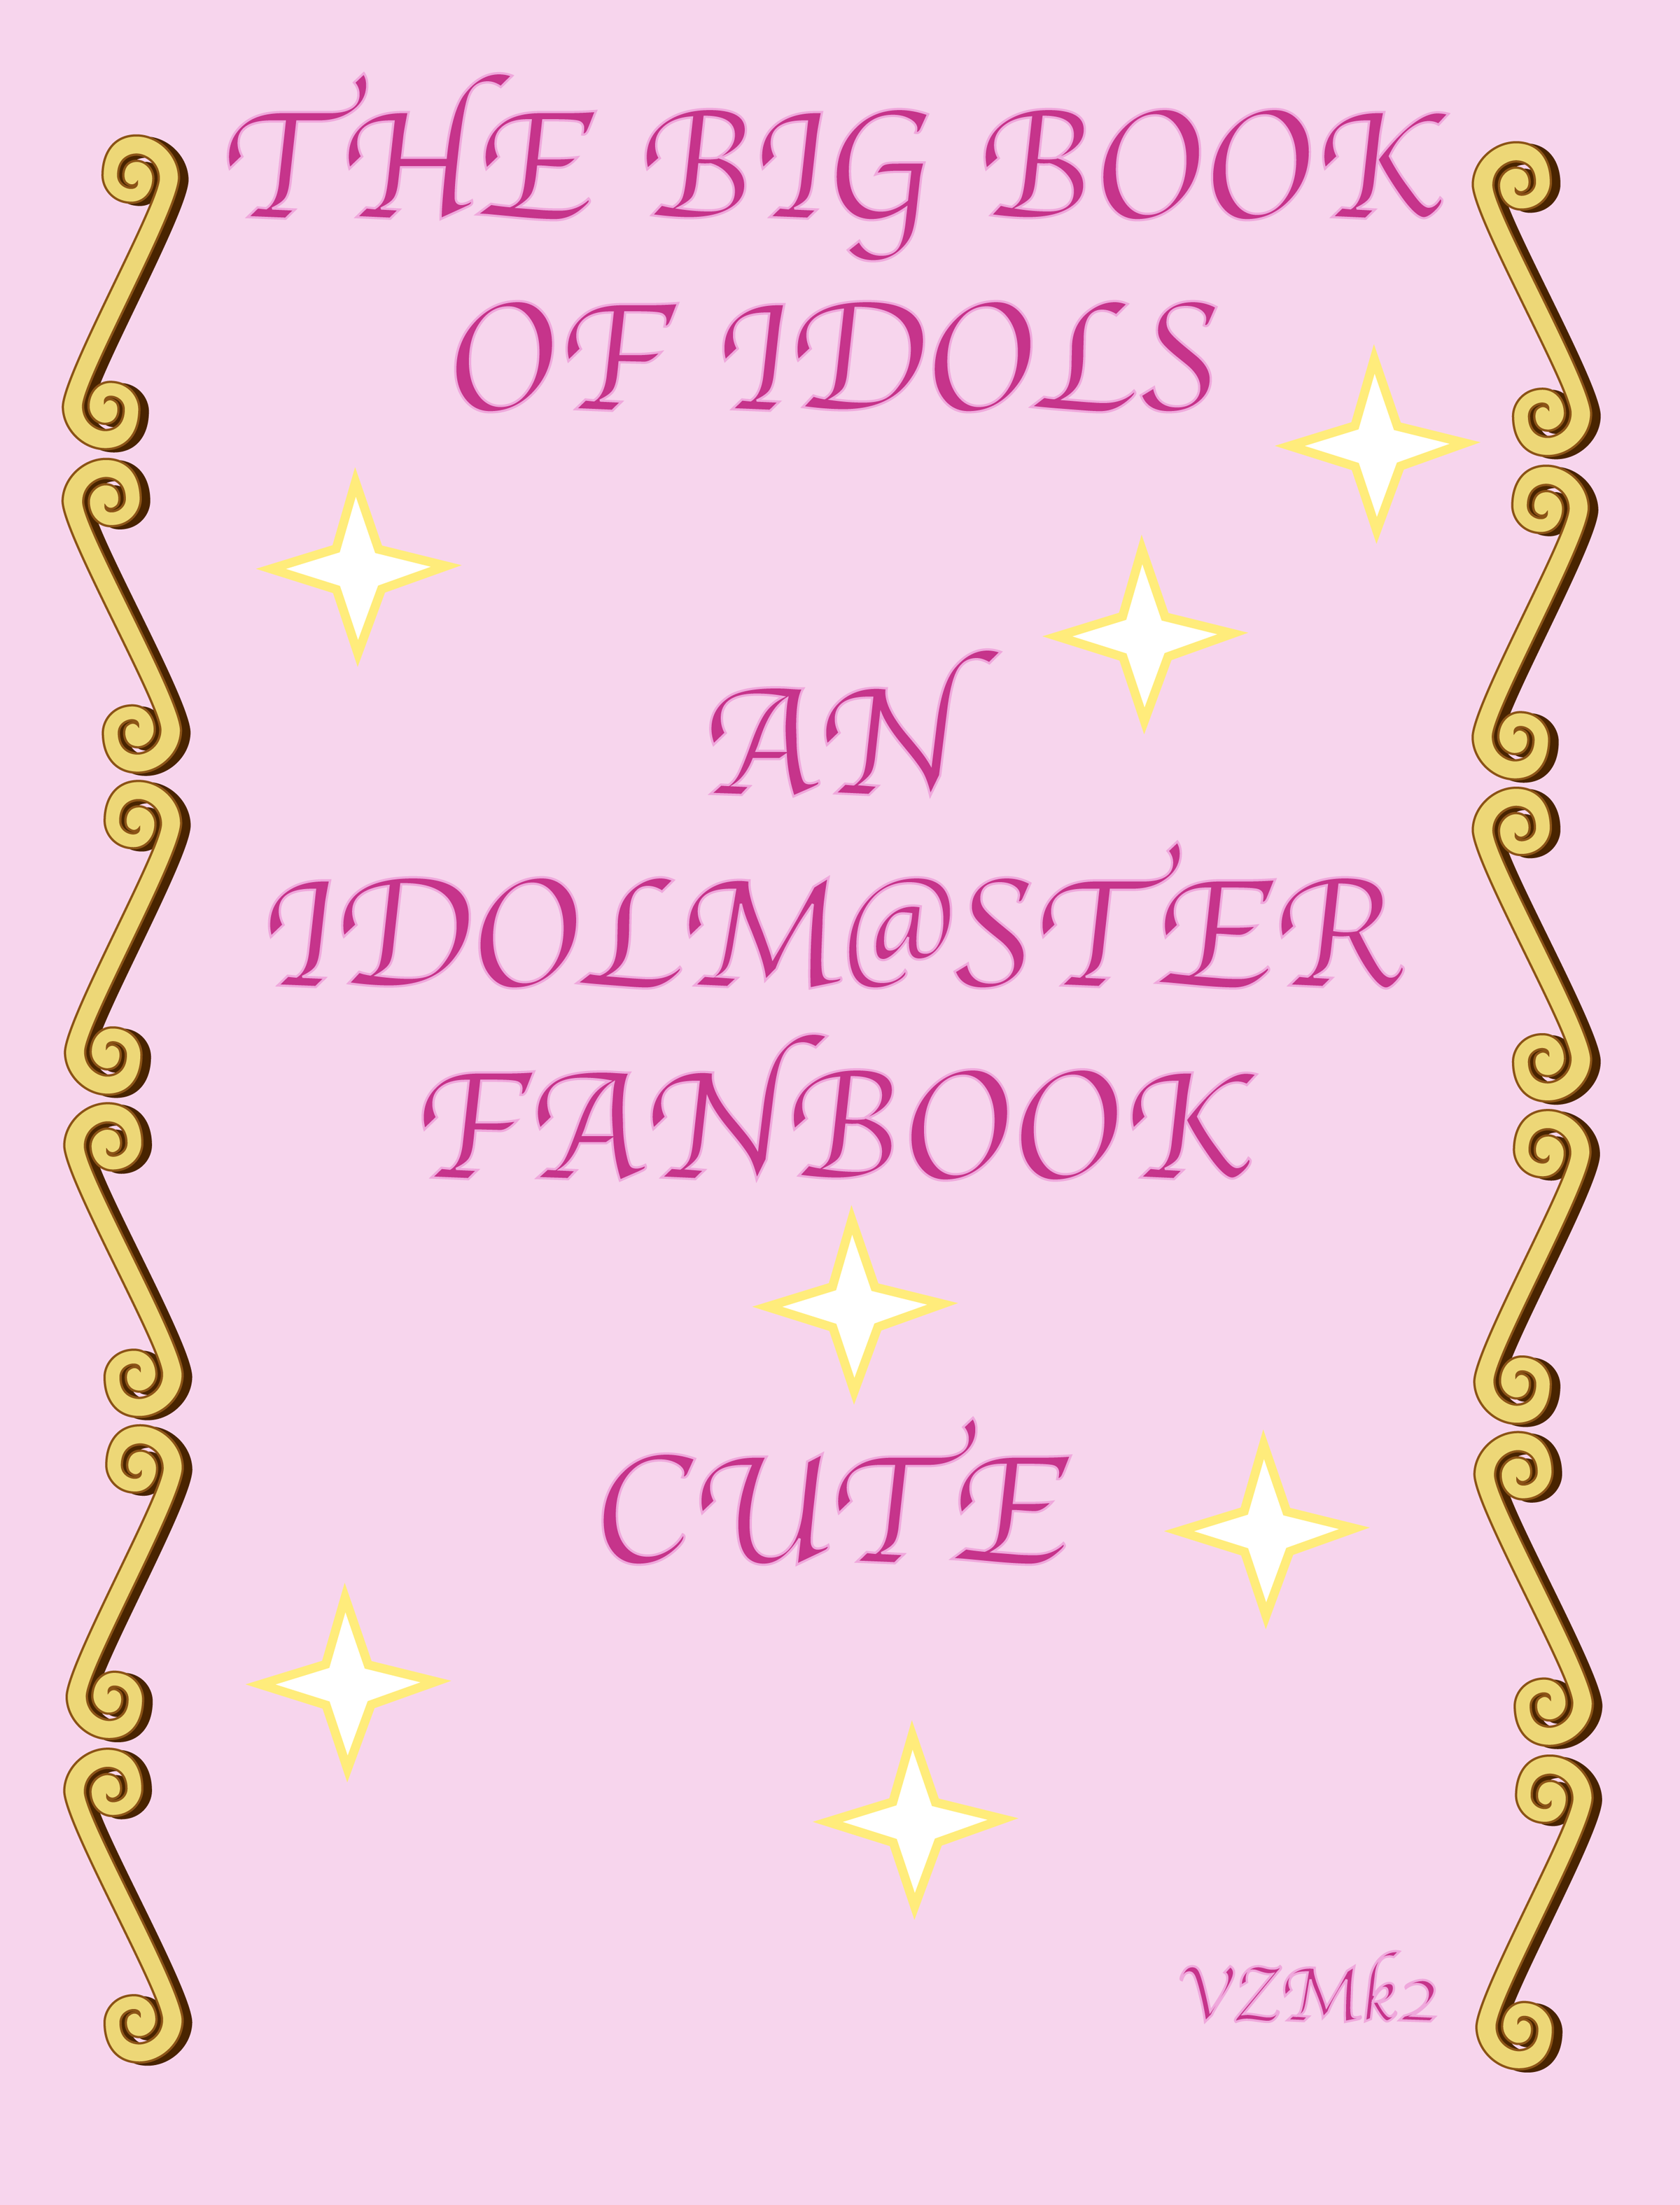 cover design CUTE.png